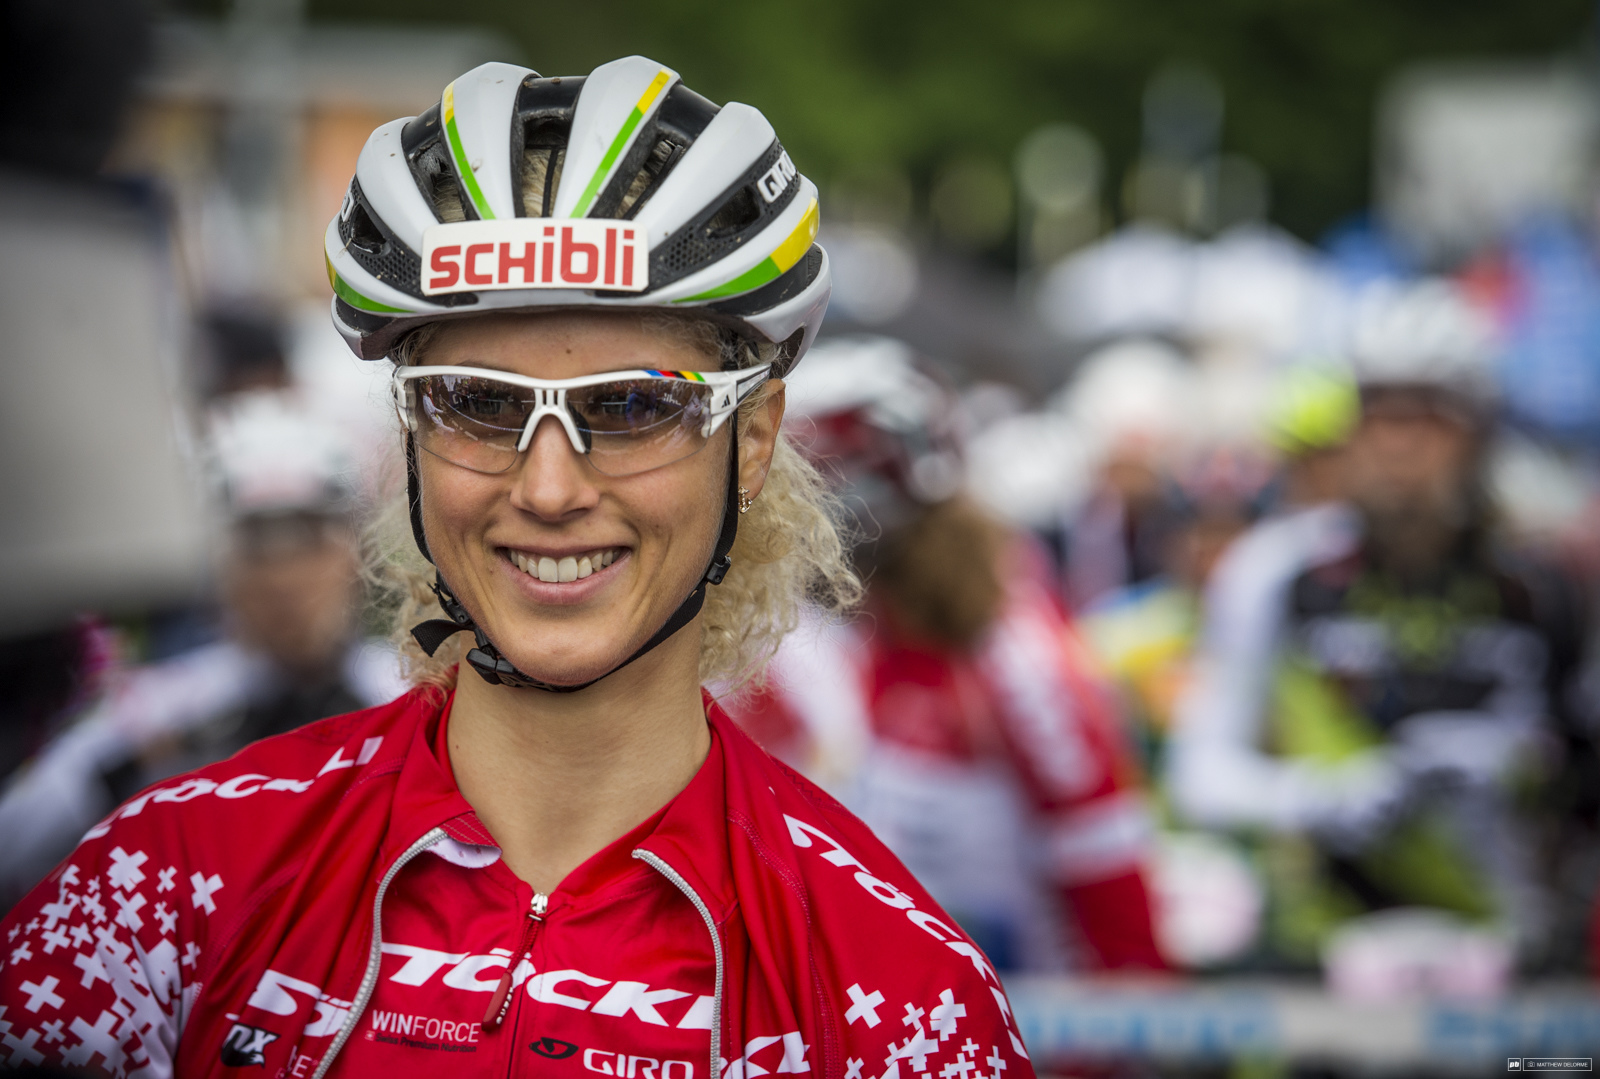 Jolanda Neff was all smiles at the start.